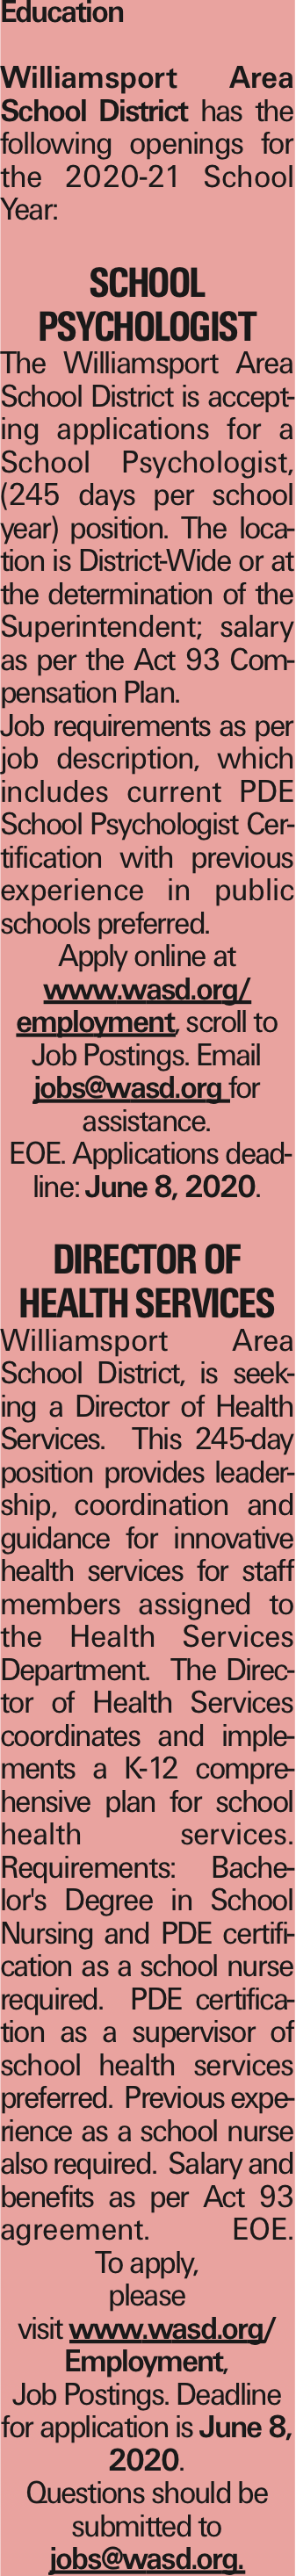 Education Williamsport Area School District has the following openings for the 2020-21 School Year: School Psychologist The Williamsport Area School District is accepting applications for a School Psychologist, (245 days per school year) position. The location is District-Wide or at the determination of the Superintendent; salary as per the Act 93 Compensation Plan. Job requirements as per job description, which includes current PDE School Psychologist Certification with previous experience in public schools preferred. Apply online at www.wasd.org/ employment, scroll to Job Postings. Email jobs@wasd.org for assistance. EOE. Applications deadline: June 8, 2020. Director of Health Services Williamsport Area School District, is seeking a Director of Health Services. This 245-day position provides leadership, coordination and guidance for innovative health services for staff members assigned to the Health Services Department. The Director of Health Services coordinates and implements a K-12 comprehensive plan for school health services. Requirements: Bachelor's Degree in School Nursing and PDE certification as a school nurse required. PDE certification as a supervisor of school health services preferred. Previous experience as a school nurse also required. Salary and benefits as per Act 93 agreement. EOE. To apply, please visit www.wasd.org/ Employment, Job Postings. Deadline for application is June 8, 2020. Questions should be submitted to jobs@wasd.org. As published in the Press Enterprise.